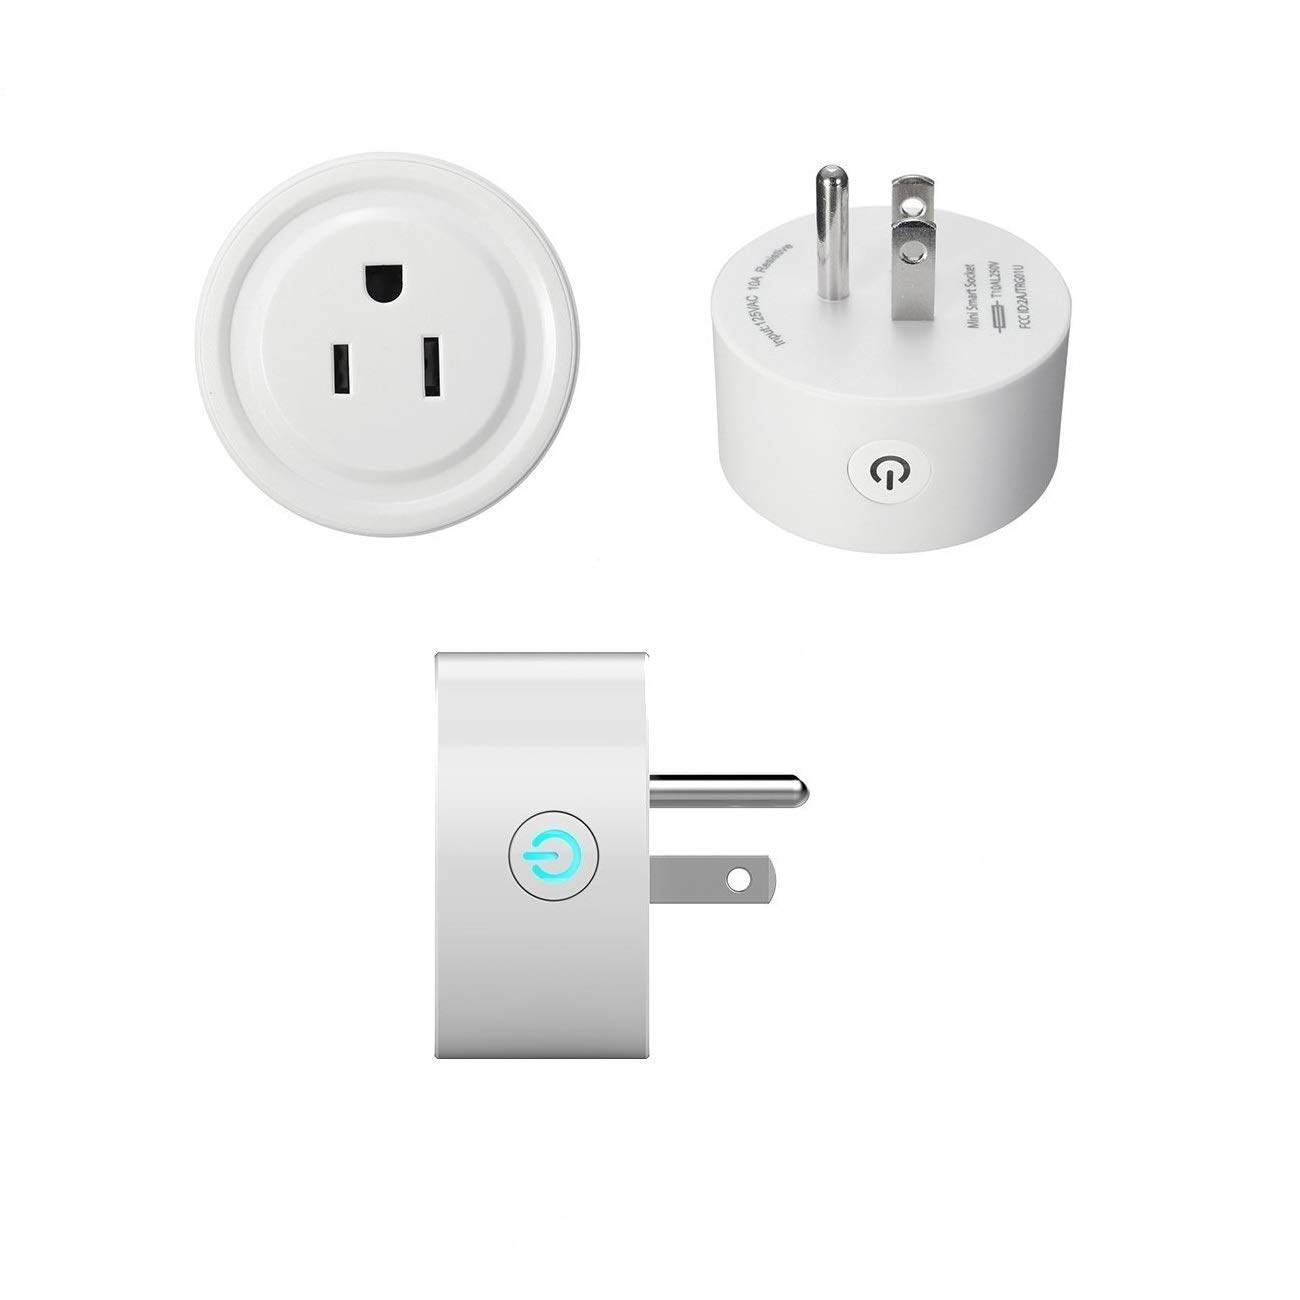 Mini Smart Socket Wifi Plug US Work with Alexa Echo Dot Voice Control No Hub Required Timing Function (2 Pack) by EVO-SMART (Image #9)